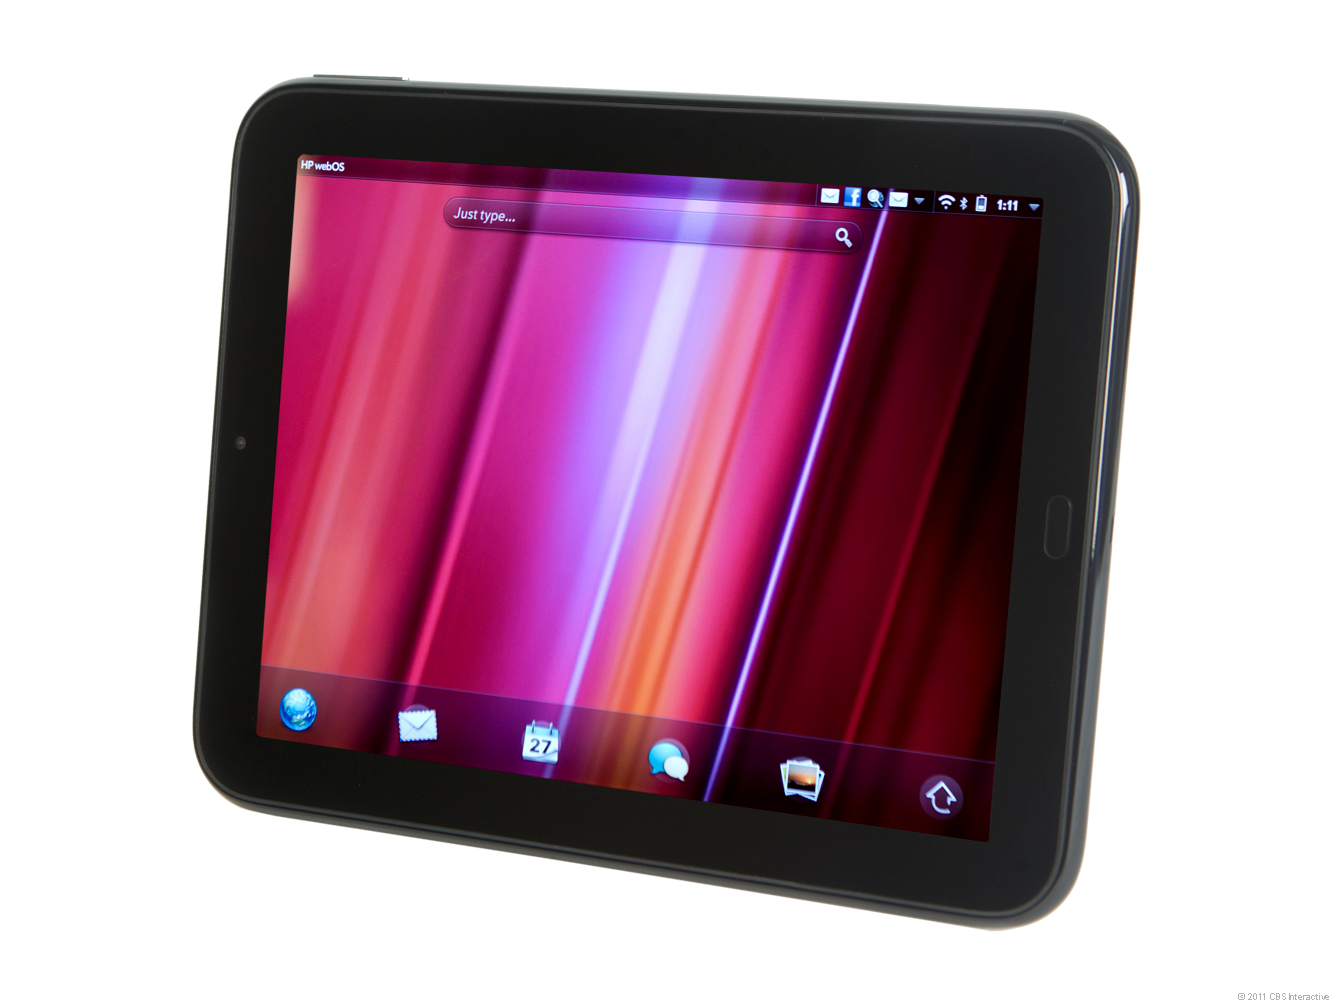 The HP TouchPad will go on sale Friday with somewhere between 300 and 400 TouchPad-optimized apps.